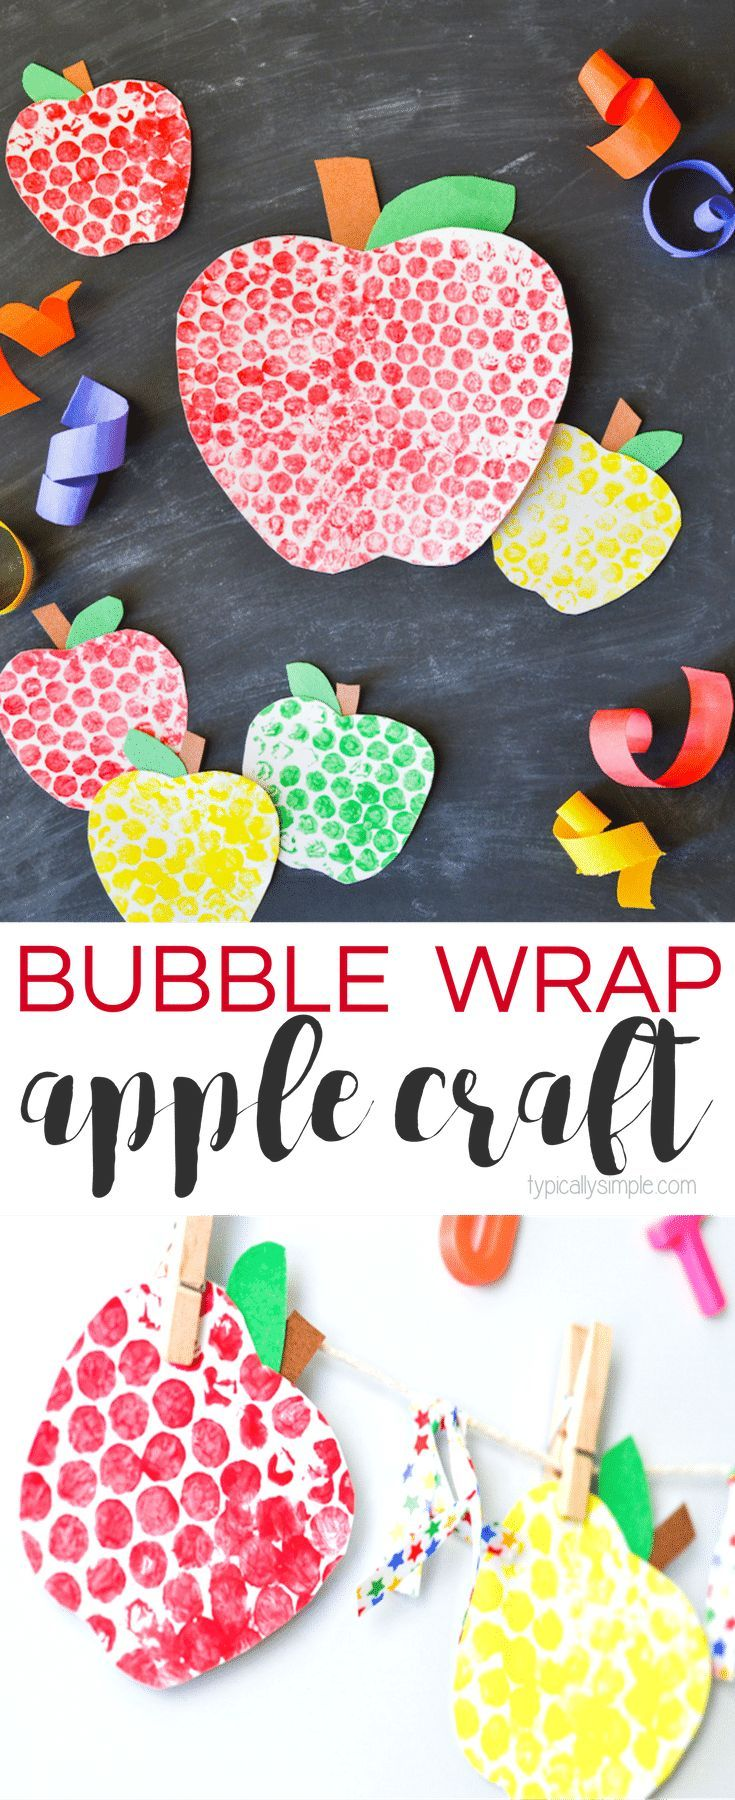 With back-to-school in full-swing and fall not too far behind, it's time to start thinking about all things apples! Only a few supplies are needed to make these cute bubble wrap painted apples with the kids!